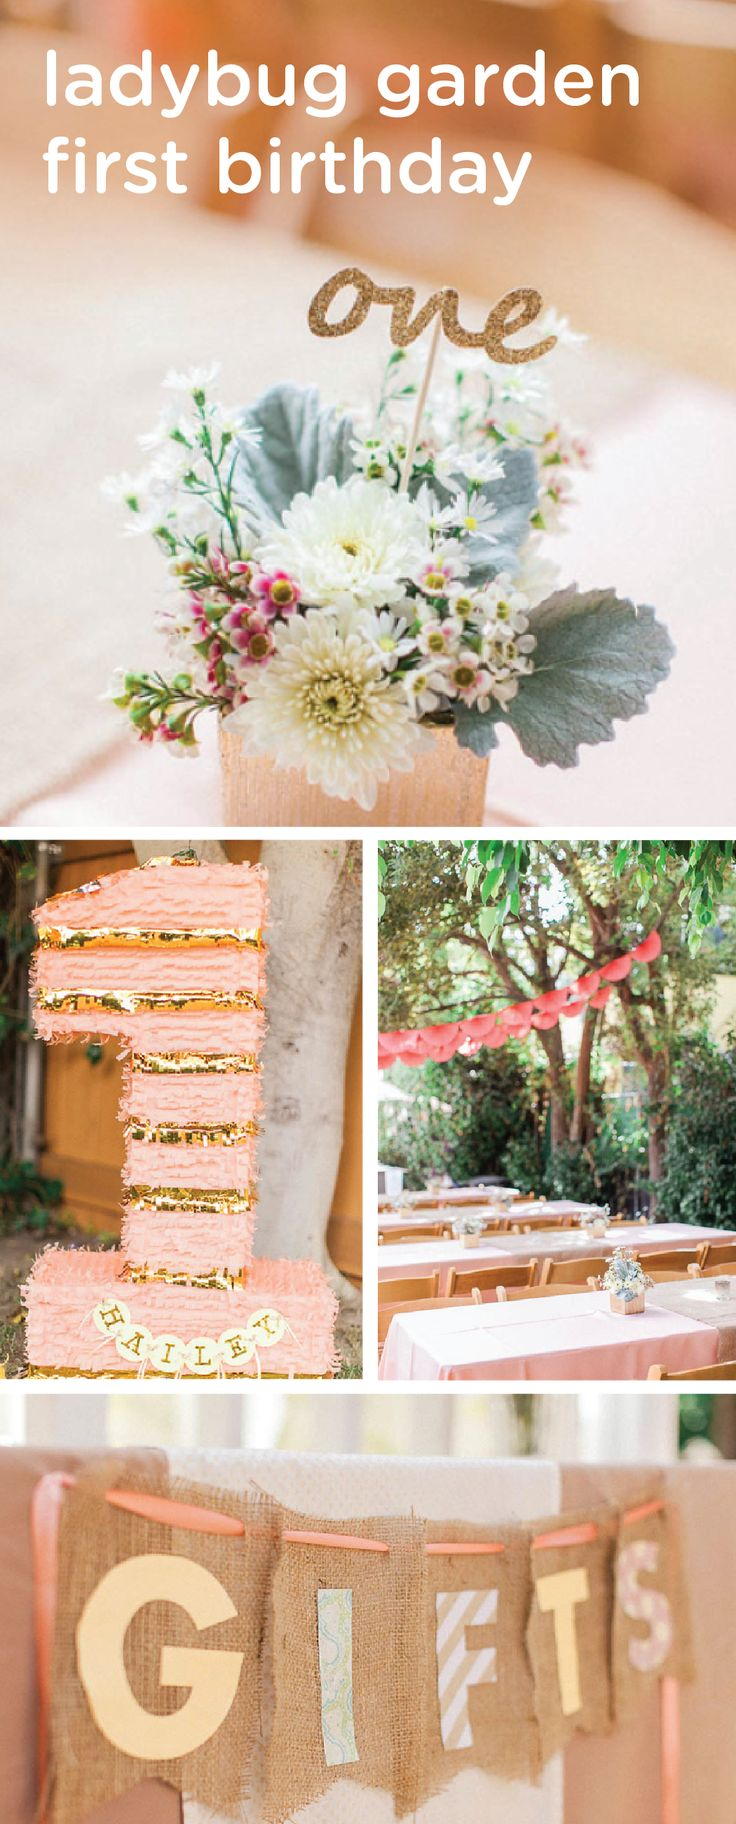 What could be cuter than a ladybug garden first birthday party? From flower centerpieces to glitter, gold and pink décor, these party ideas will help inspire you to plan the perfect first birthday party for your little girl.